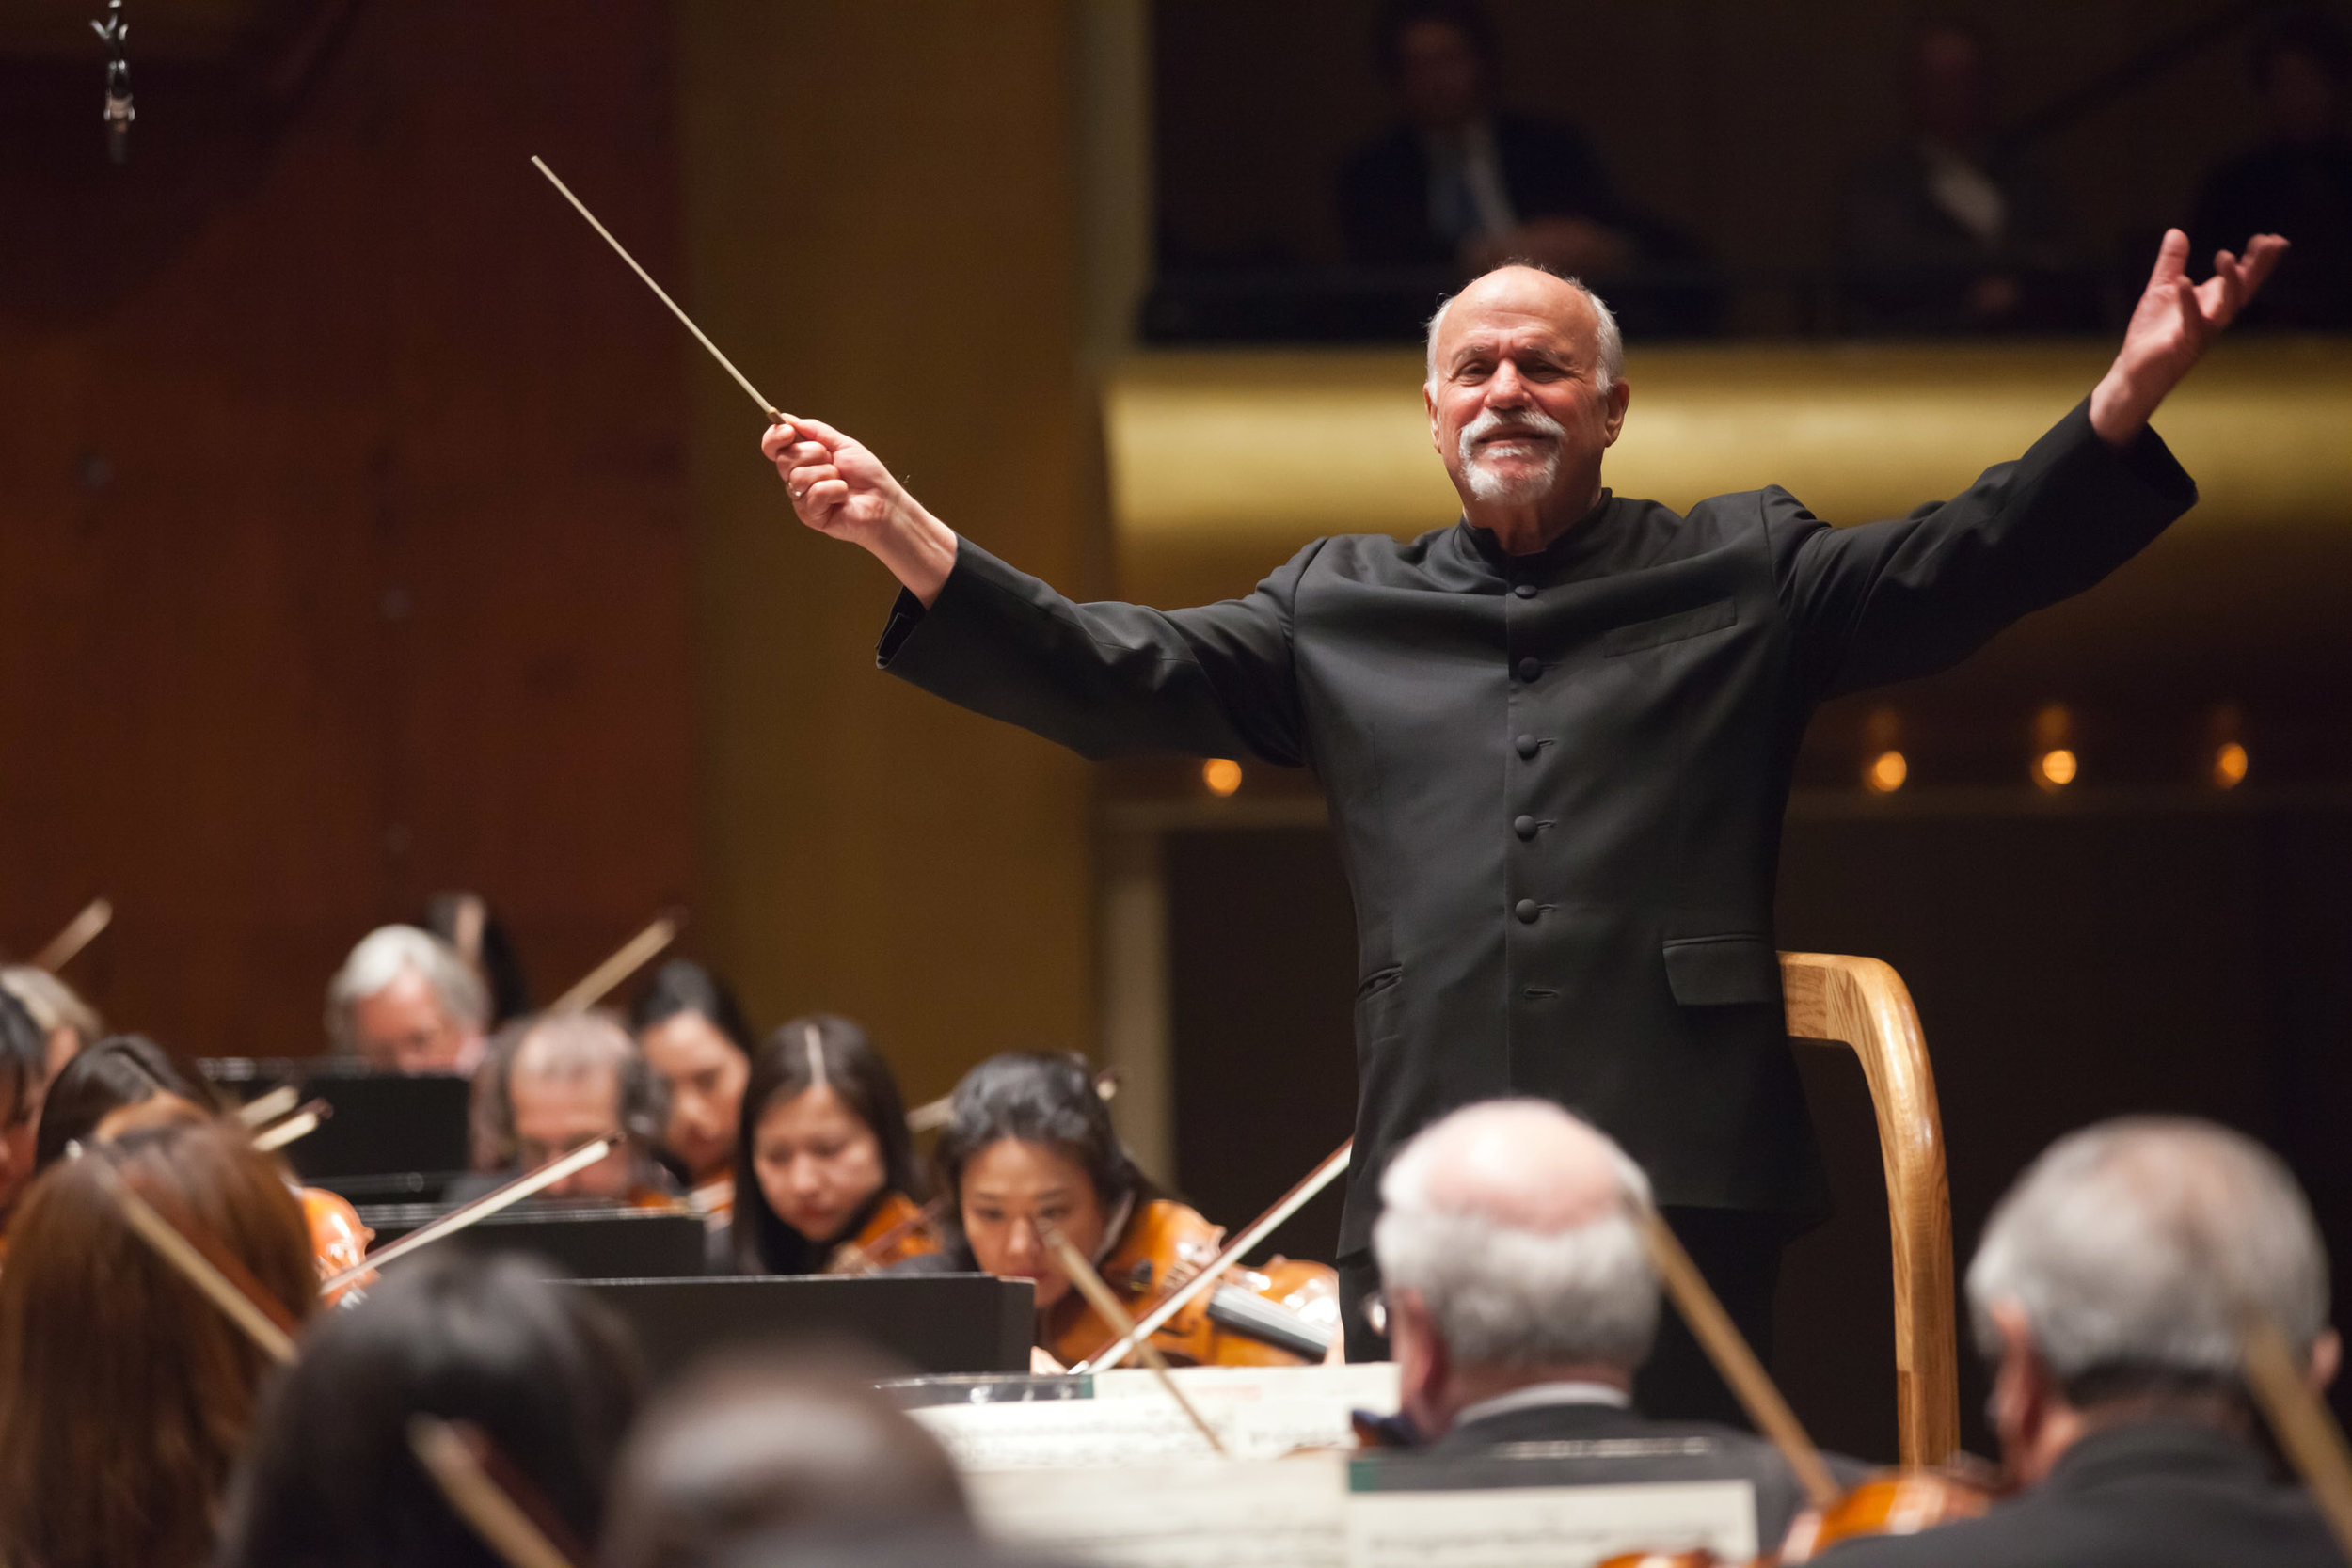 Led by David Zinman,  The Modern Beethoven  (March 2012) honored the composer's original vision and explored Beethoven's world from a modern perspective, coupling his symphonies with three 20th-century concertos reflecting a different aspect of Beethoven.